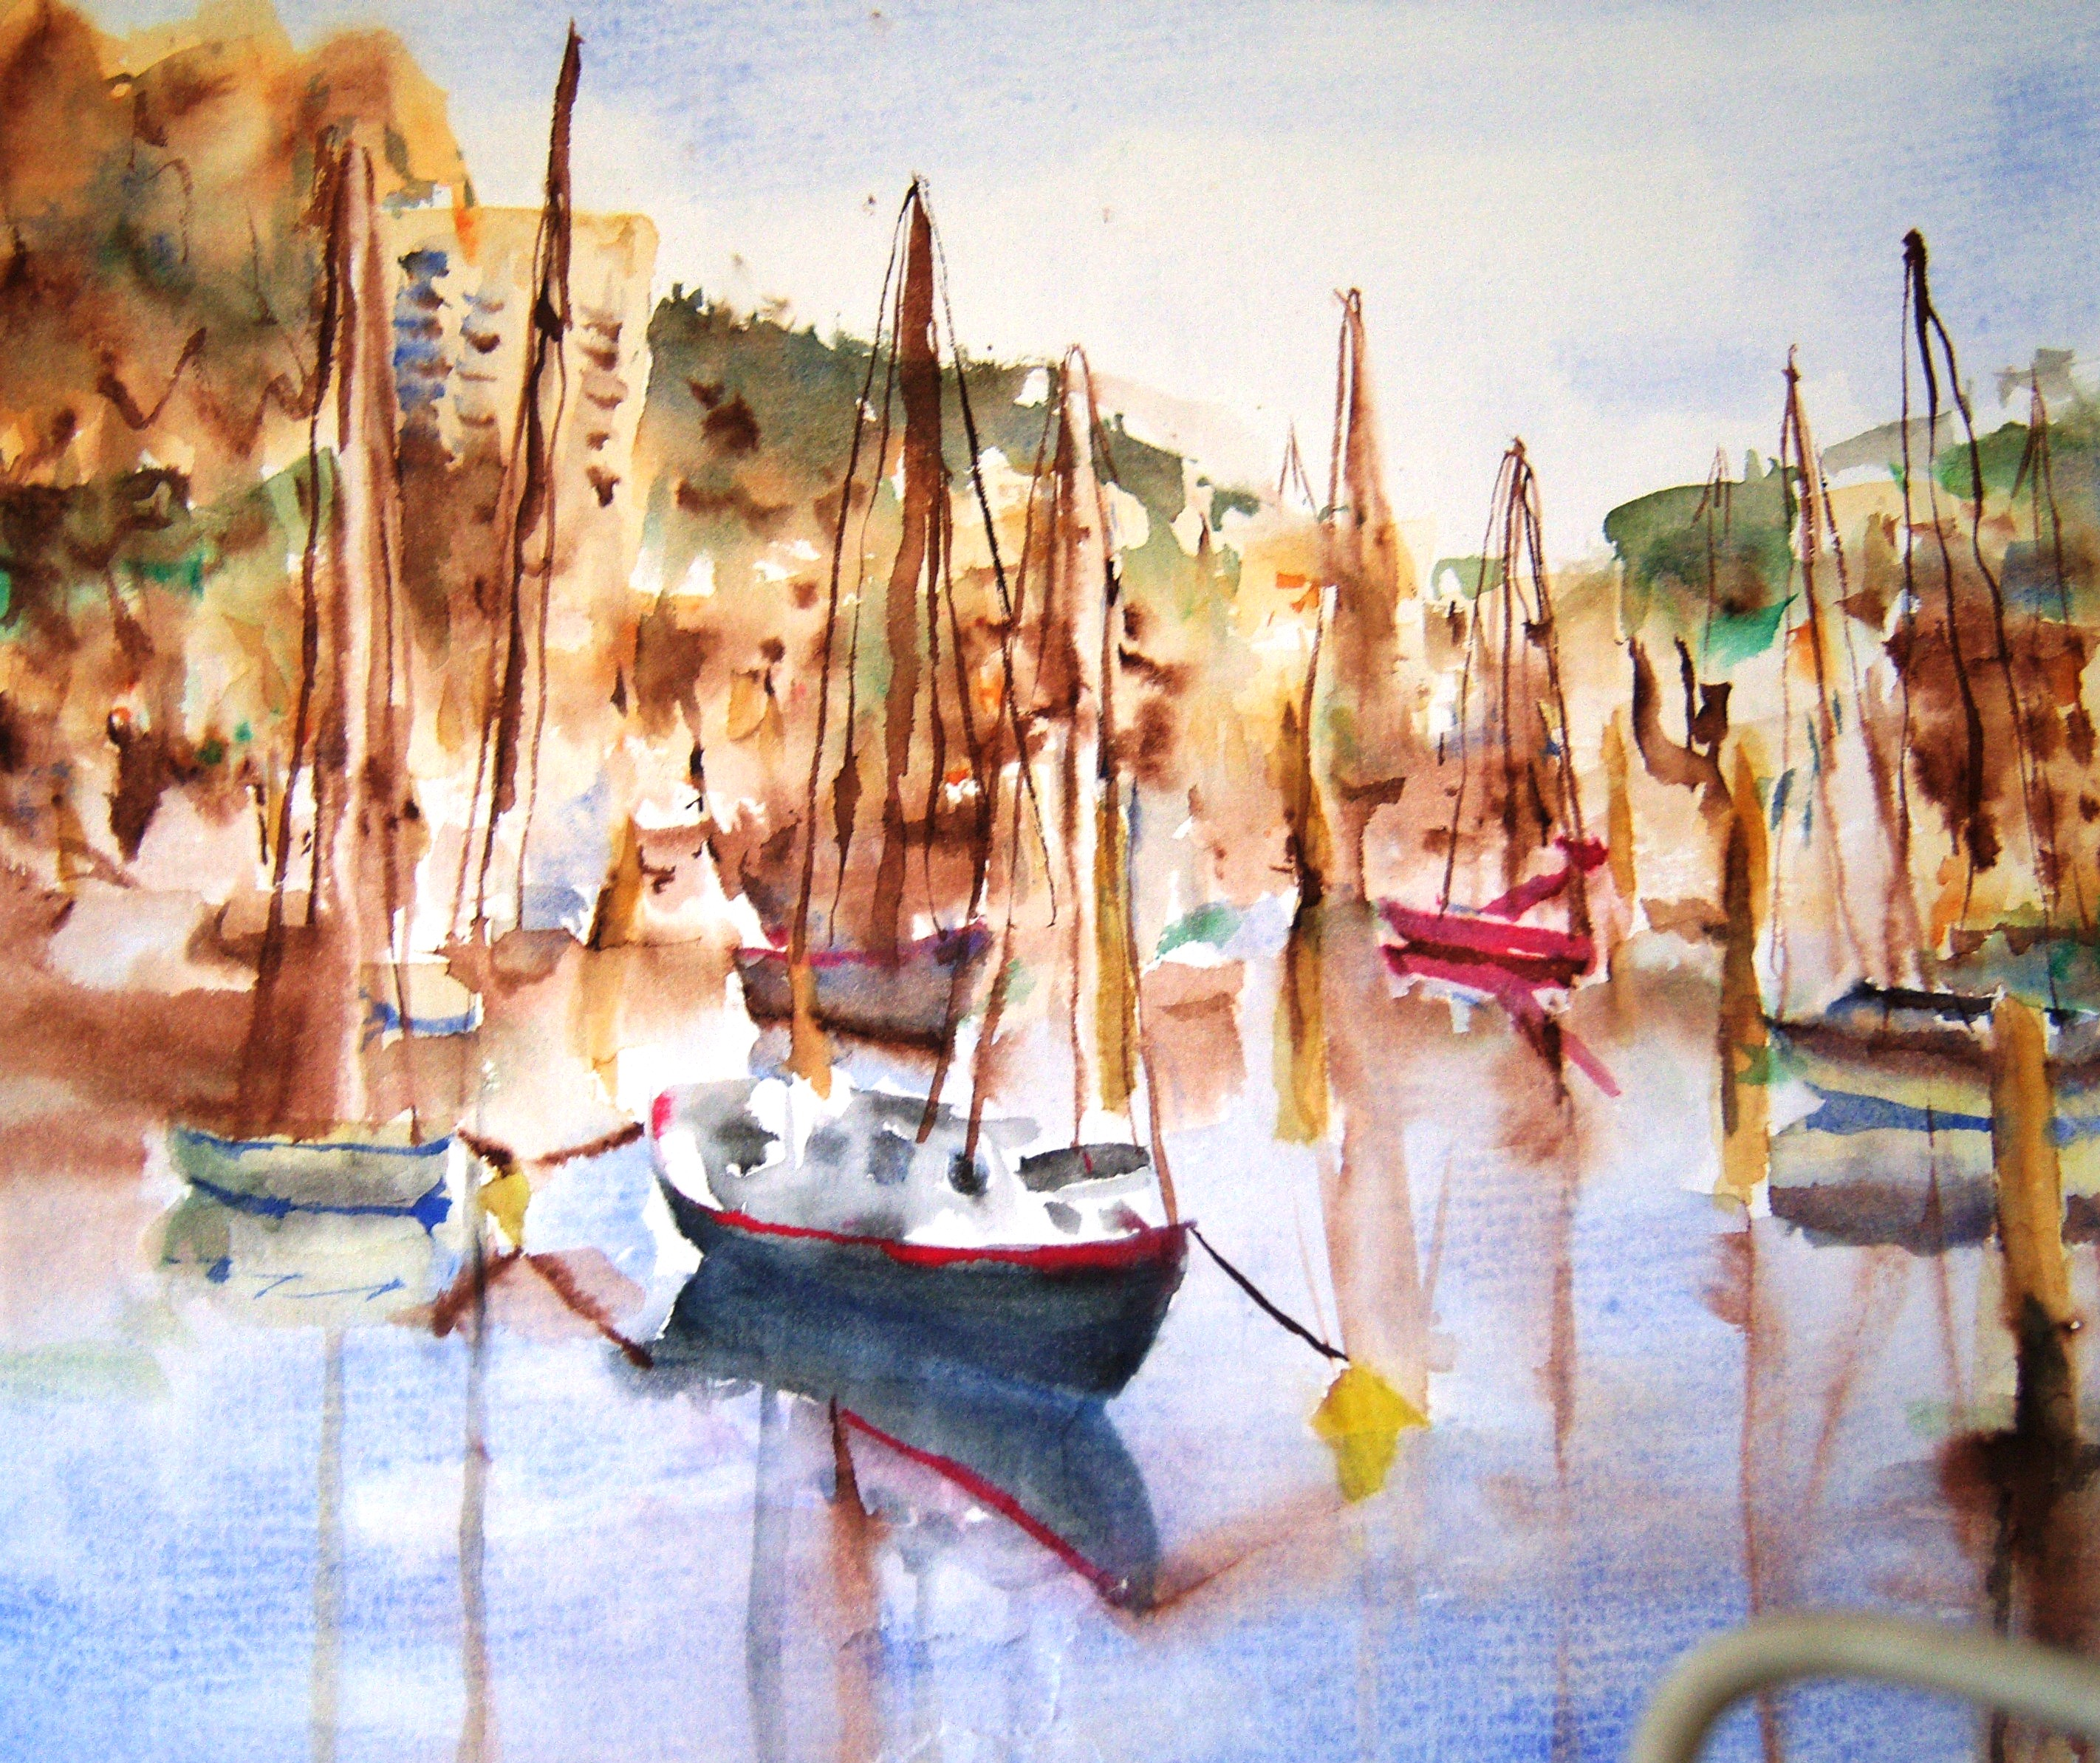 The Still of the Harbour